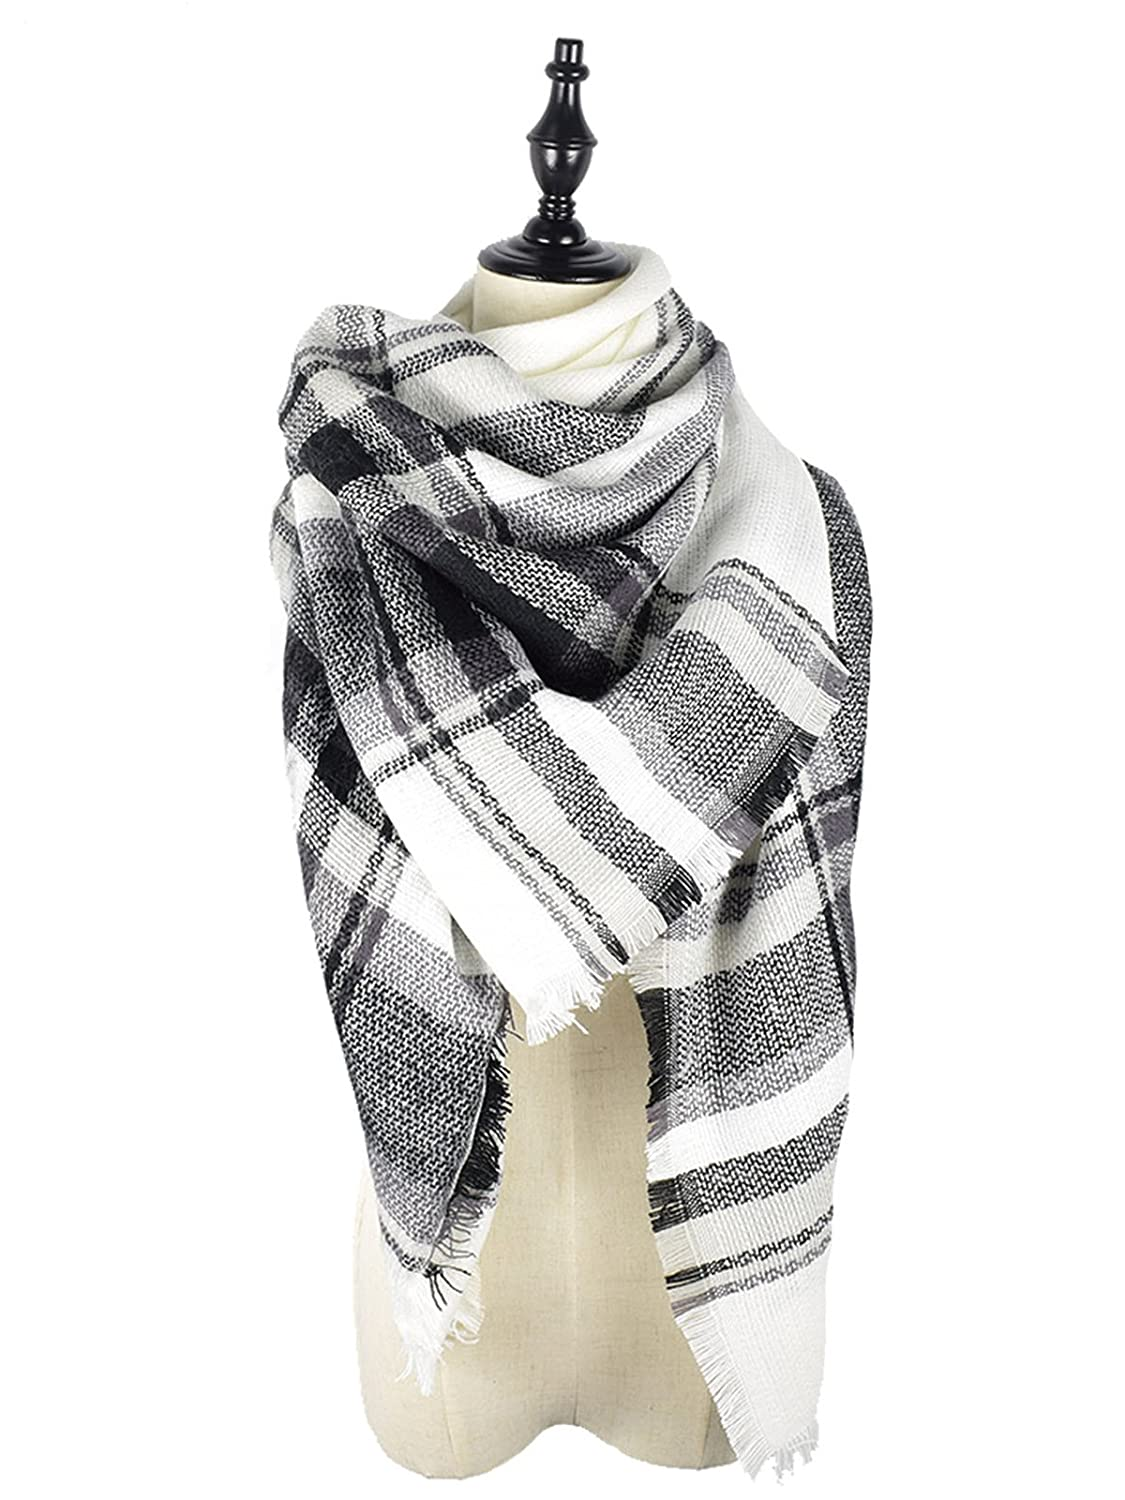 Zando Soft Warm Tartan Plaid Scarf Shawl Cape Blanket Scarves Fashion Wrap MNFUBFS0114A03FS